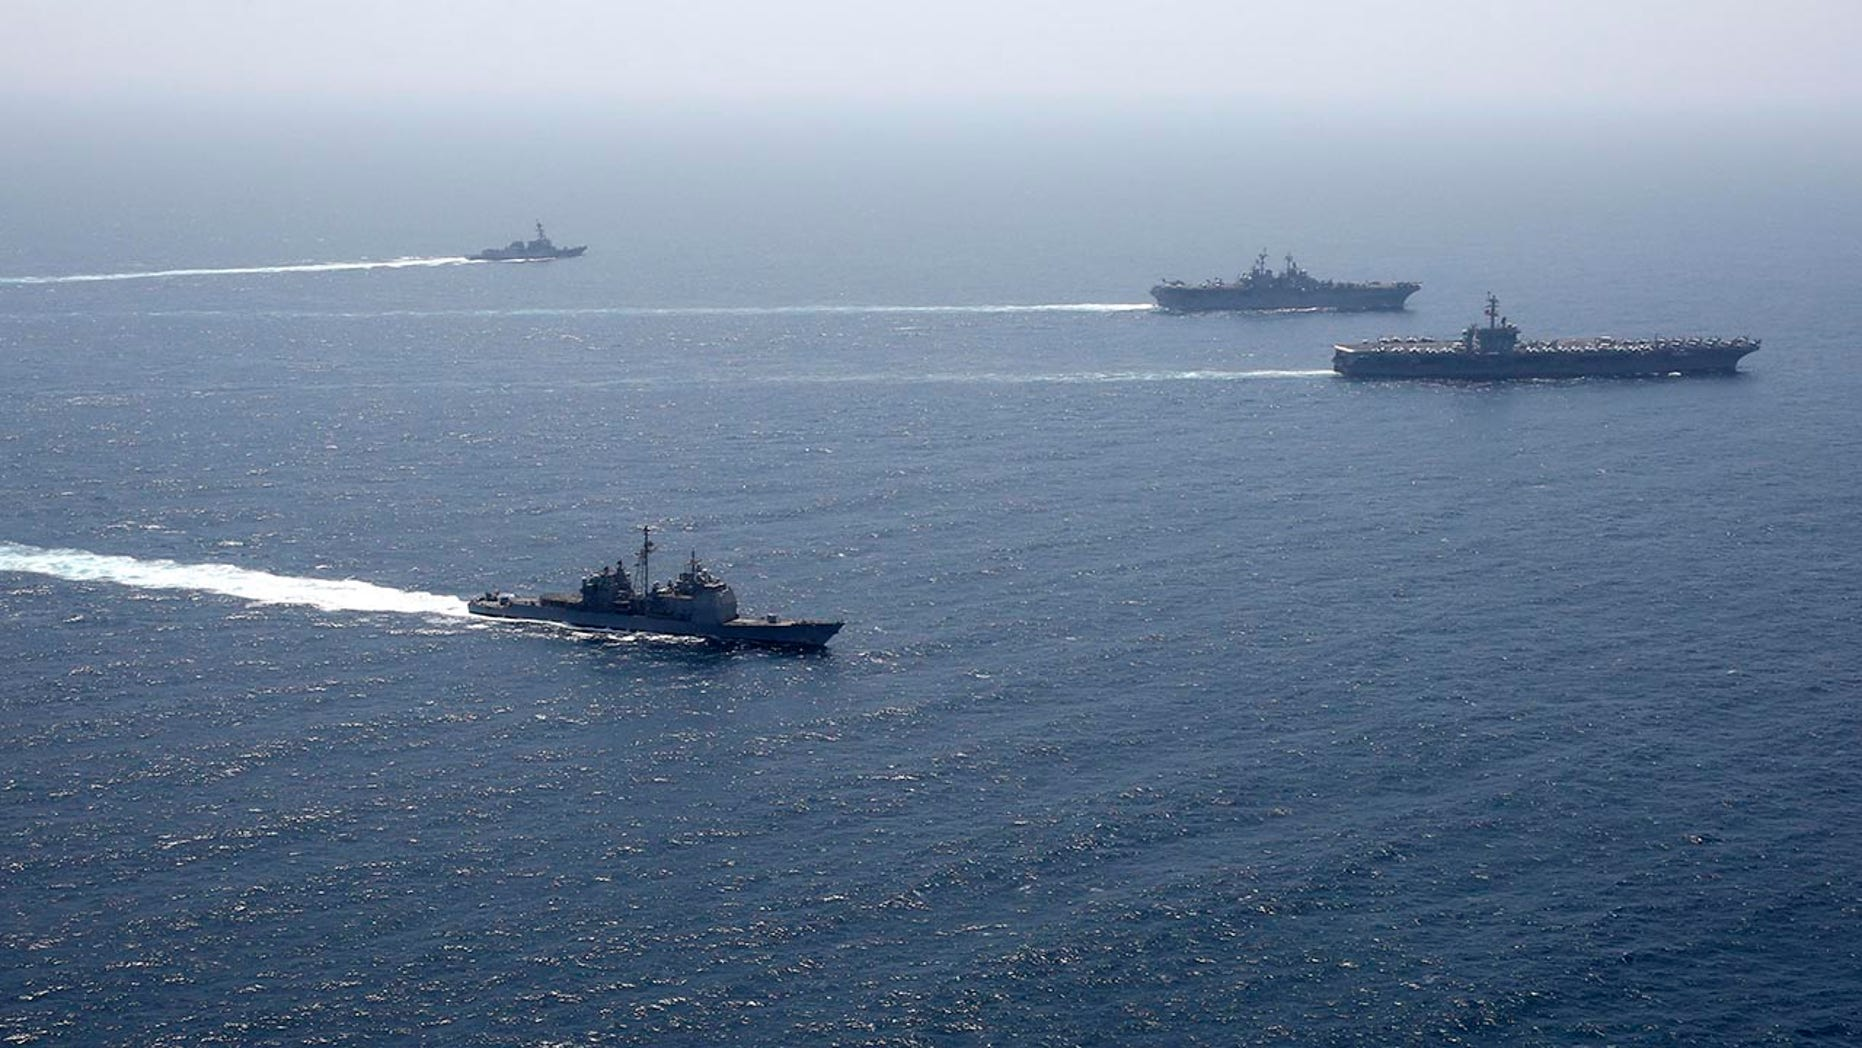 In this photo released by the U.S. Navy, the Abraham Lincoln Carrier Strike Group and Kearsarge Amphibious Ready Group conduct joint operations in the U.S. 5th Fleet area of operations - file photo.